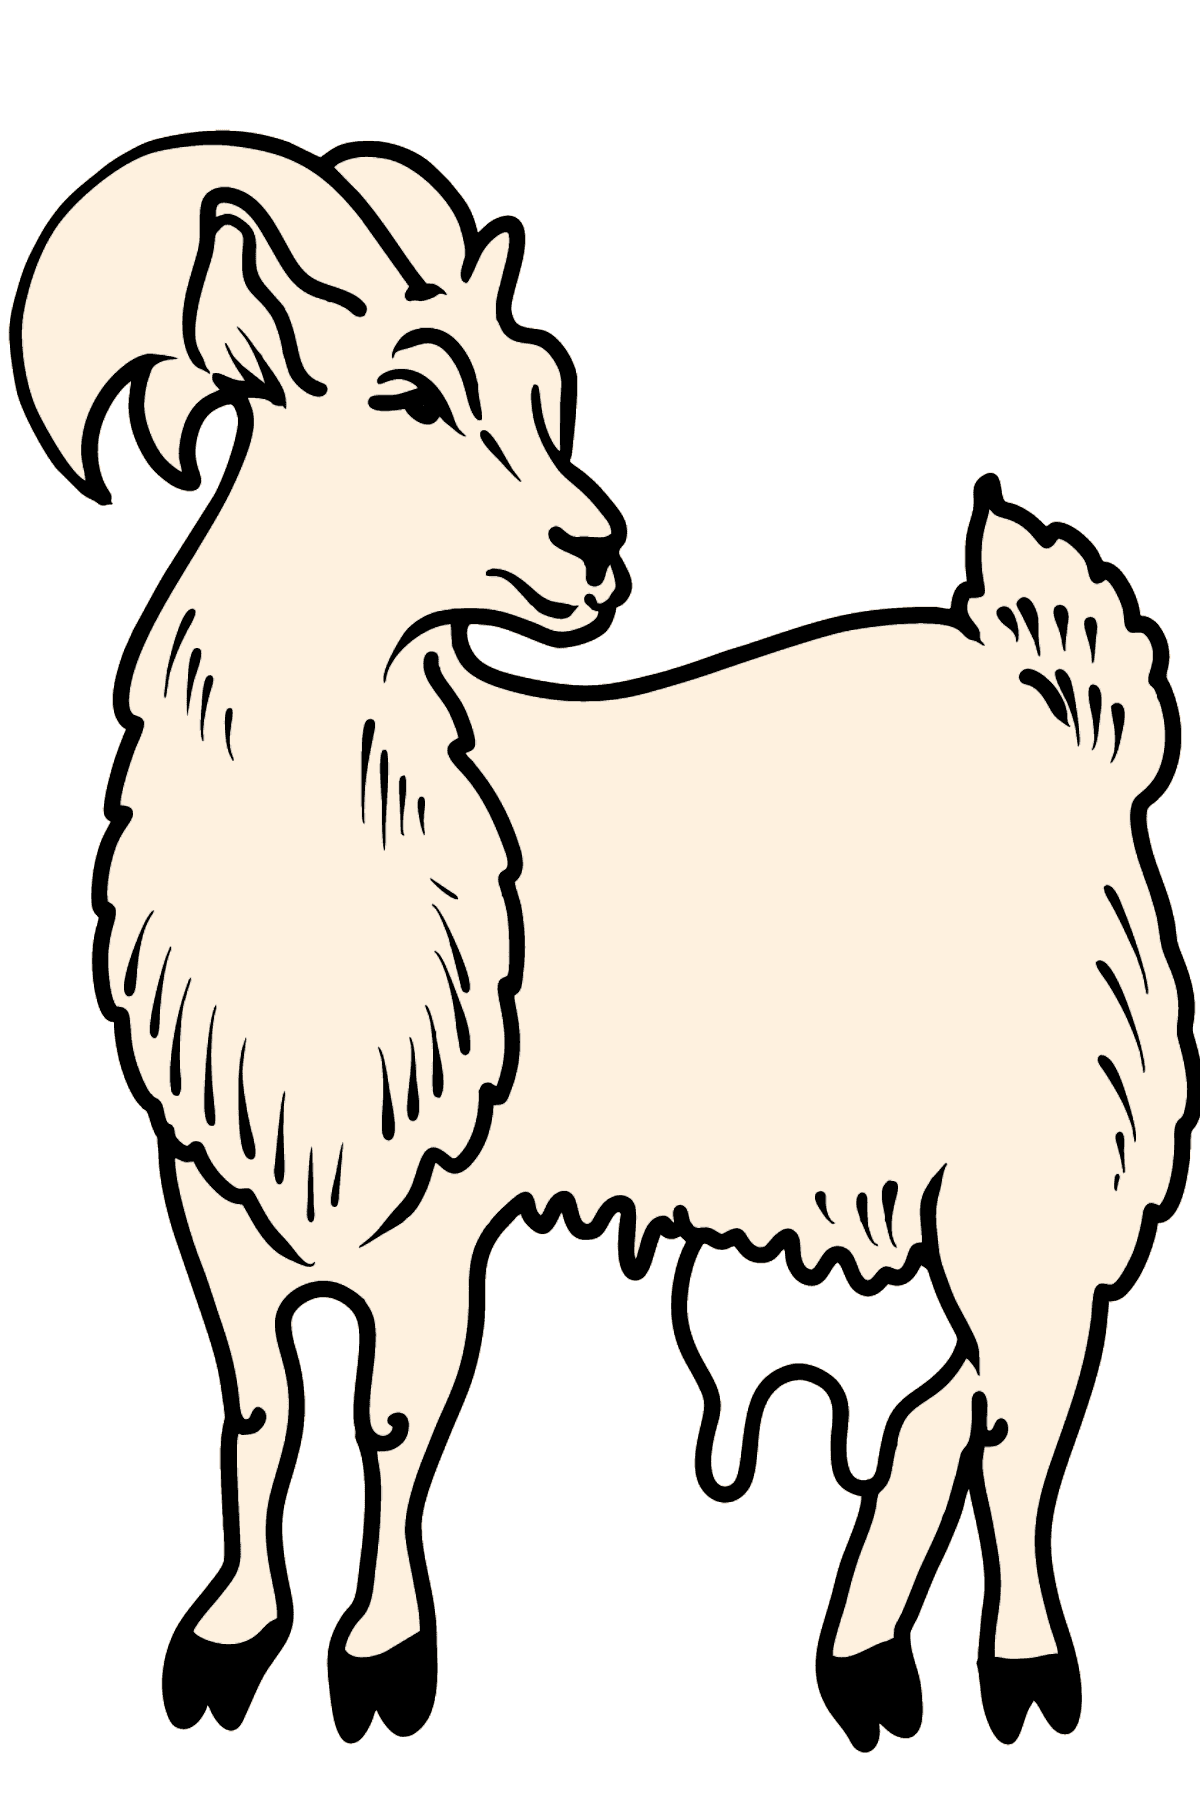 Goat coloring page - Coloring Pages for Kids